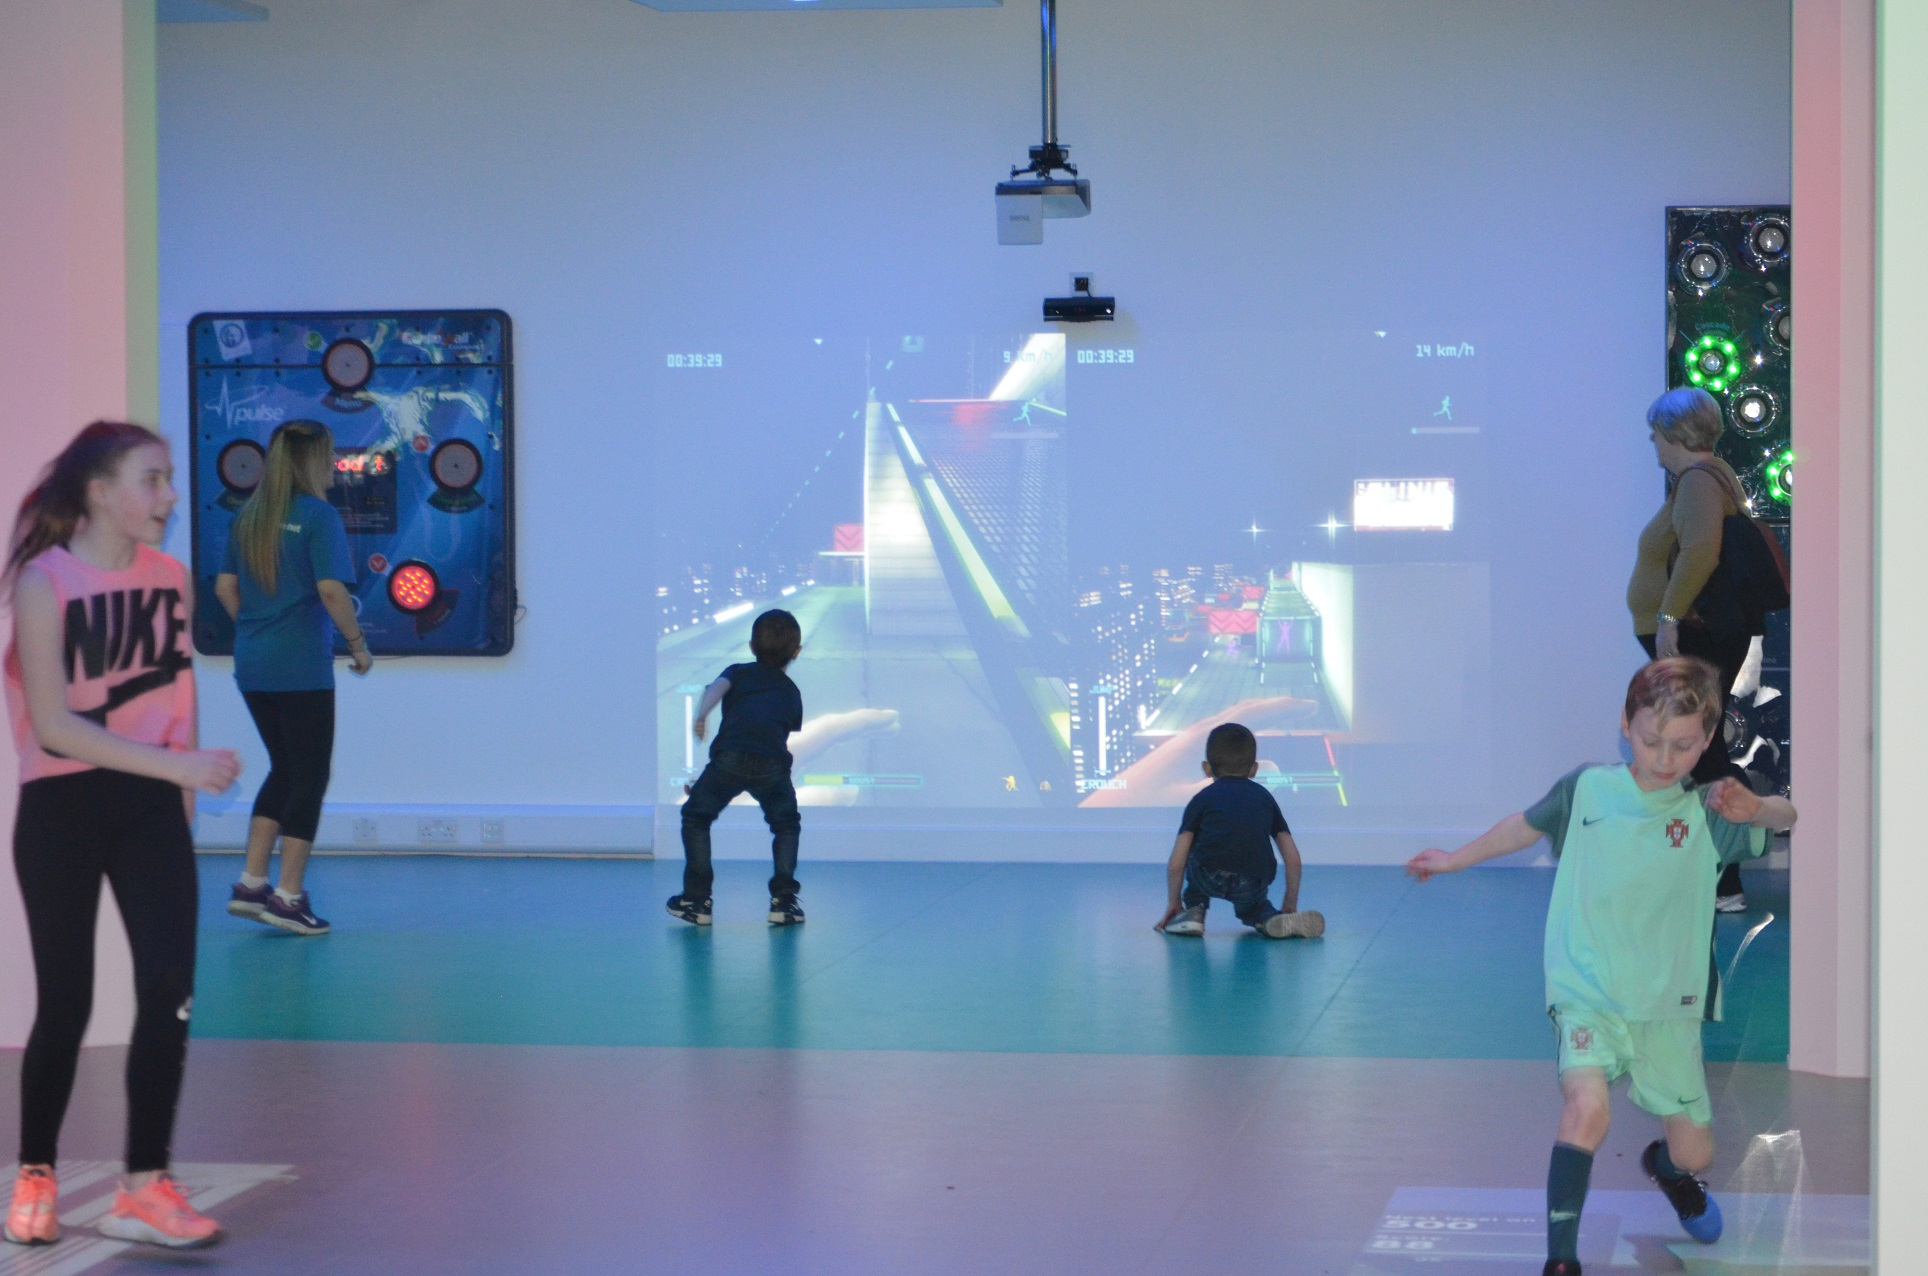 Children using the interactive area 13